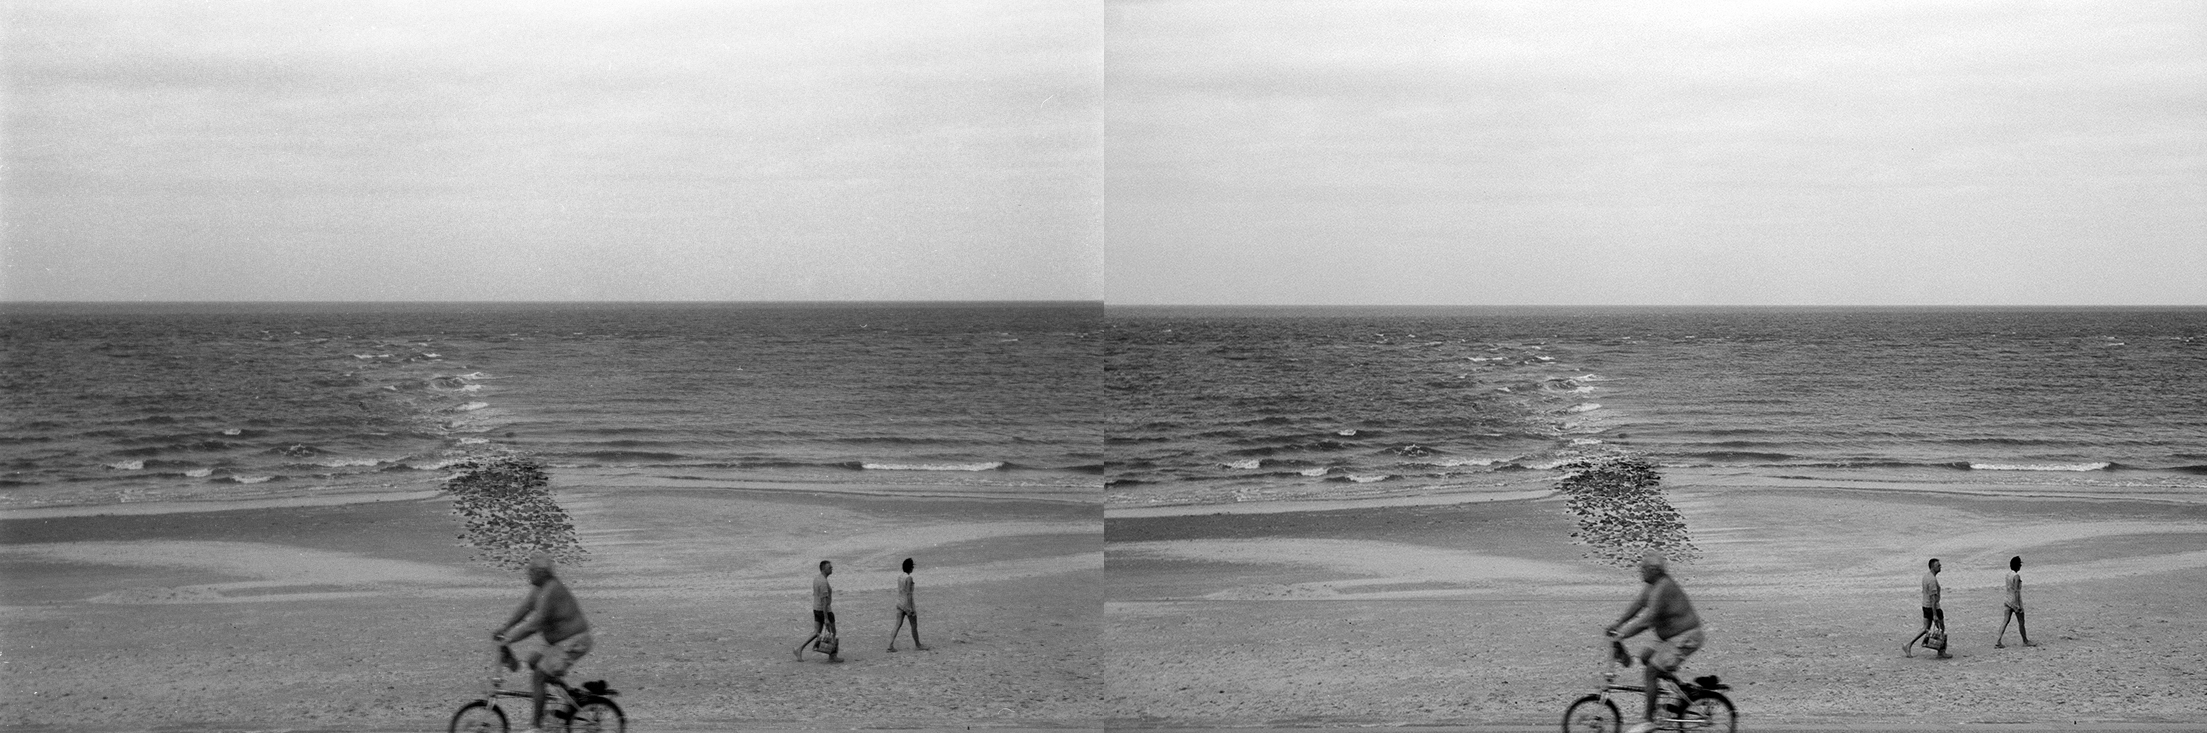 As you can see - the image on the left scanned with a prosumer CCD scanner is a lot less sharp with much less dynamic range than the one on the right scanned with a drum scanner. The left image was actually slightly sharpened in post, while the right one had absolutely no sharpening done to it. This is again due to the fact that a CCD scanner is basically taking a picture of your image through a lens and sensor, not unlike taking a digital camera. Why the drum scanner scan is so much sharper and clearer is the least-optics on the signal path, better mechanics and that it uses PMT's.